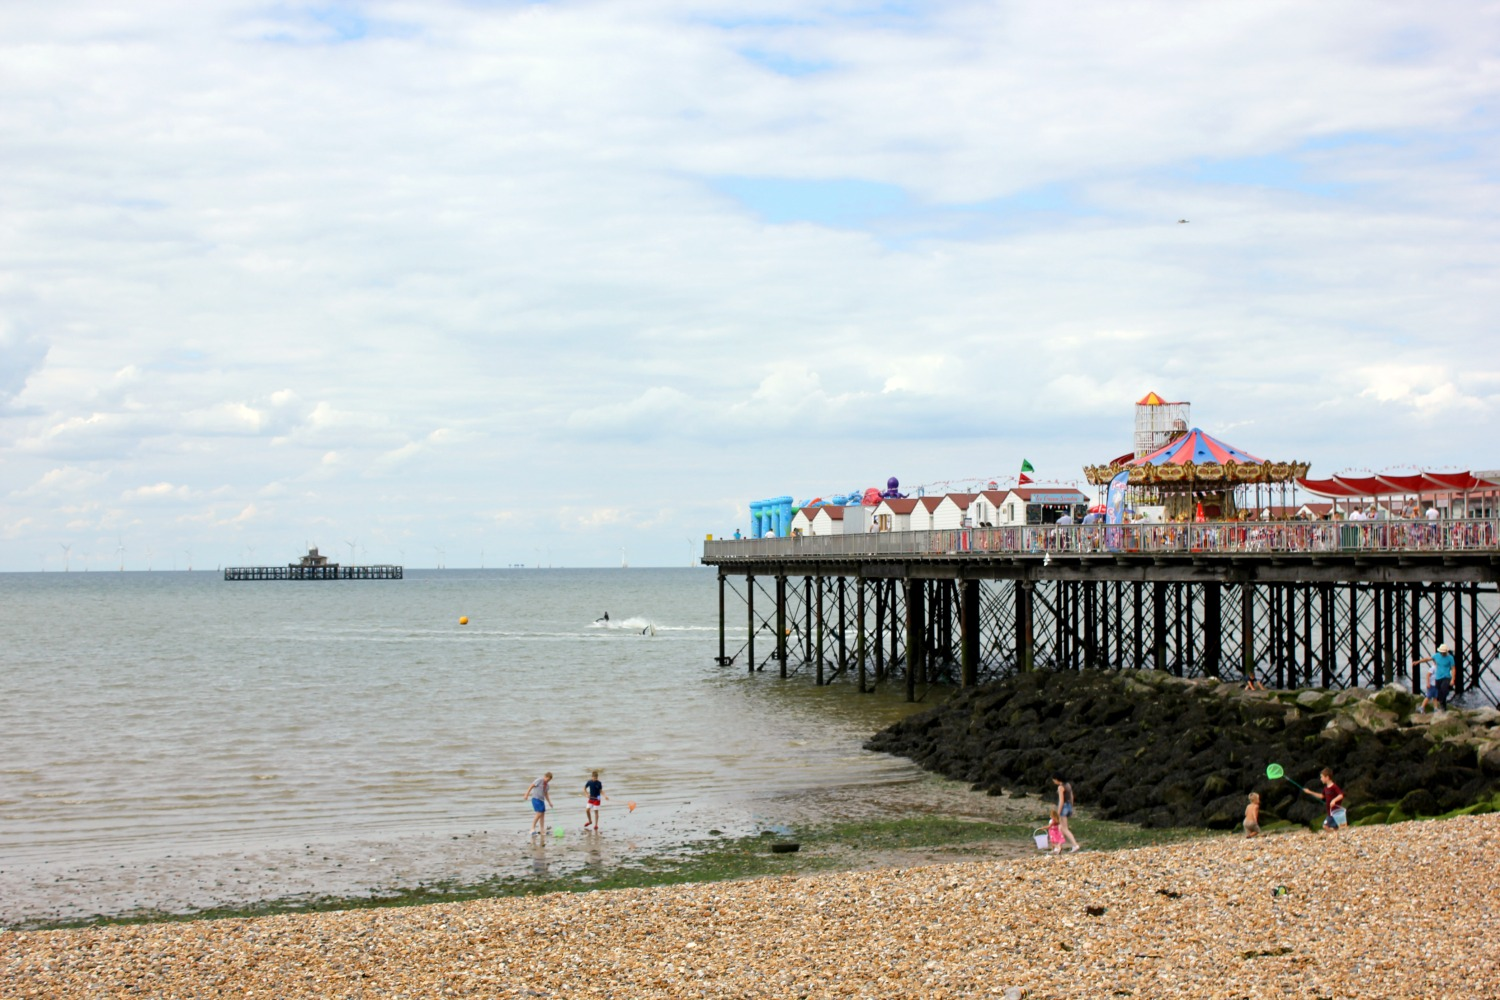 The view of the pier at Herne Bay in Kent on a summer day, with the funfair and classic carousel and people paddling